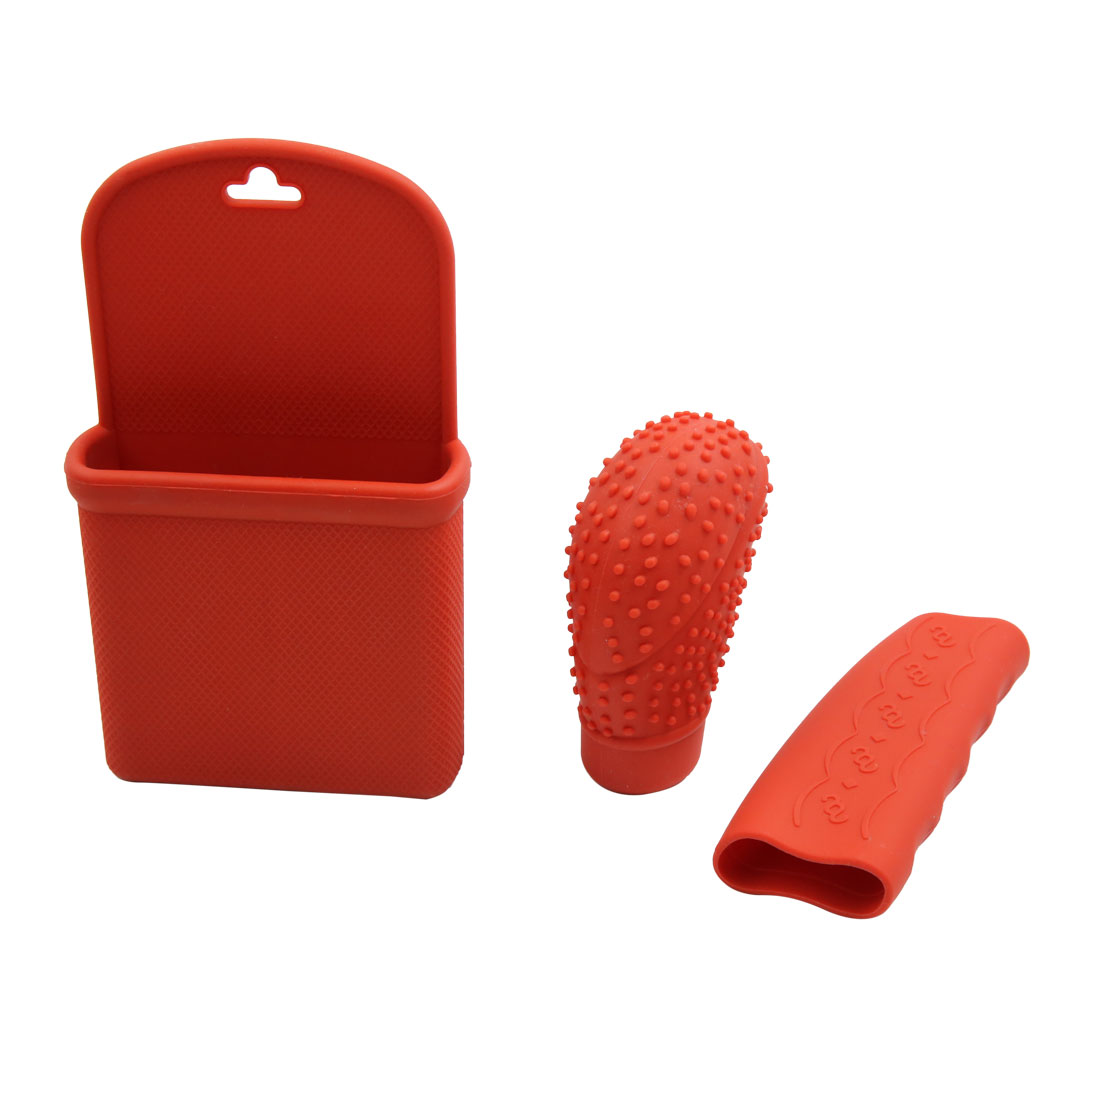 3 In 1 Red Silicone Auto Car Shift Knob Hand Brake Cover Storage Holder Set